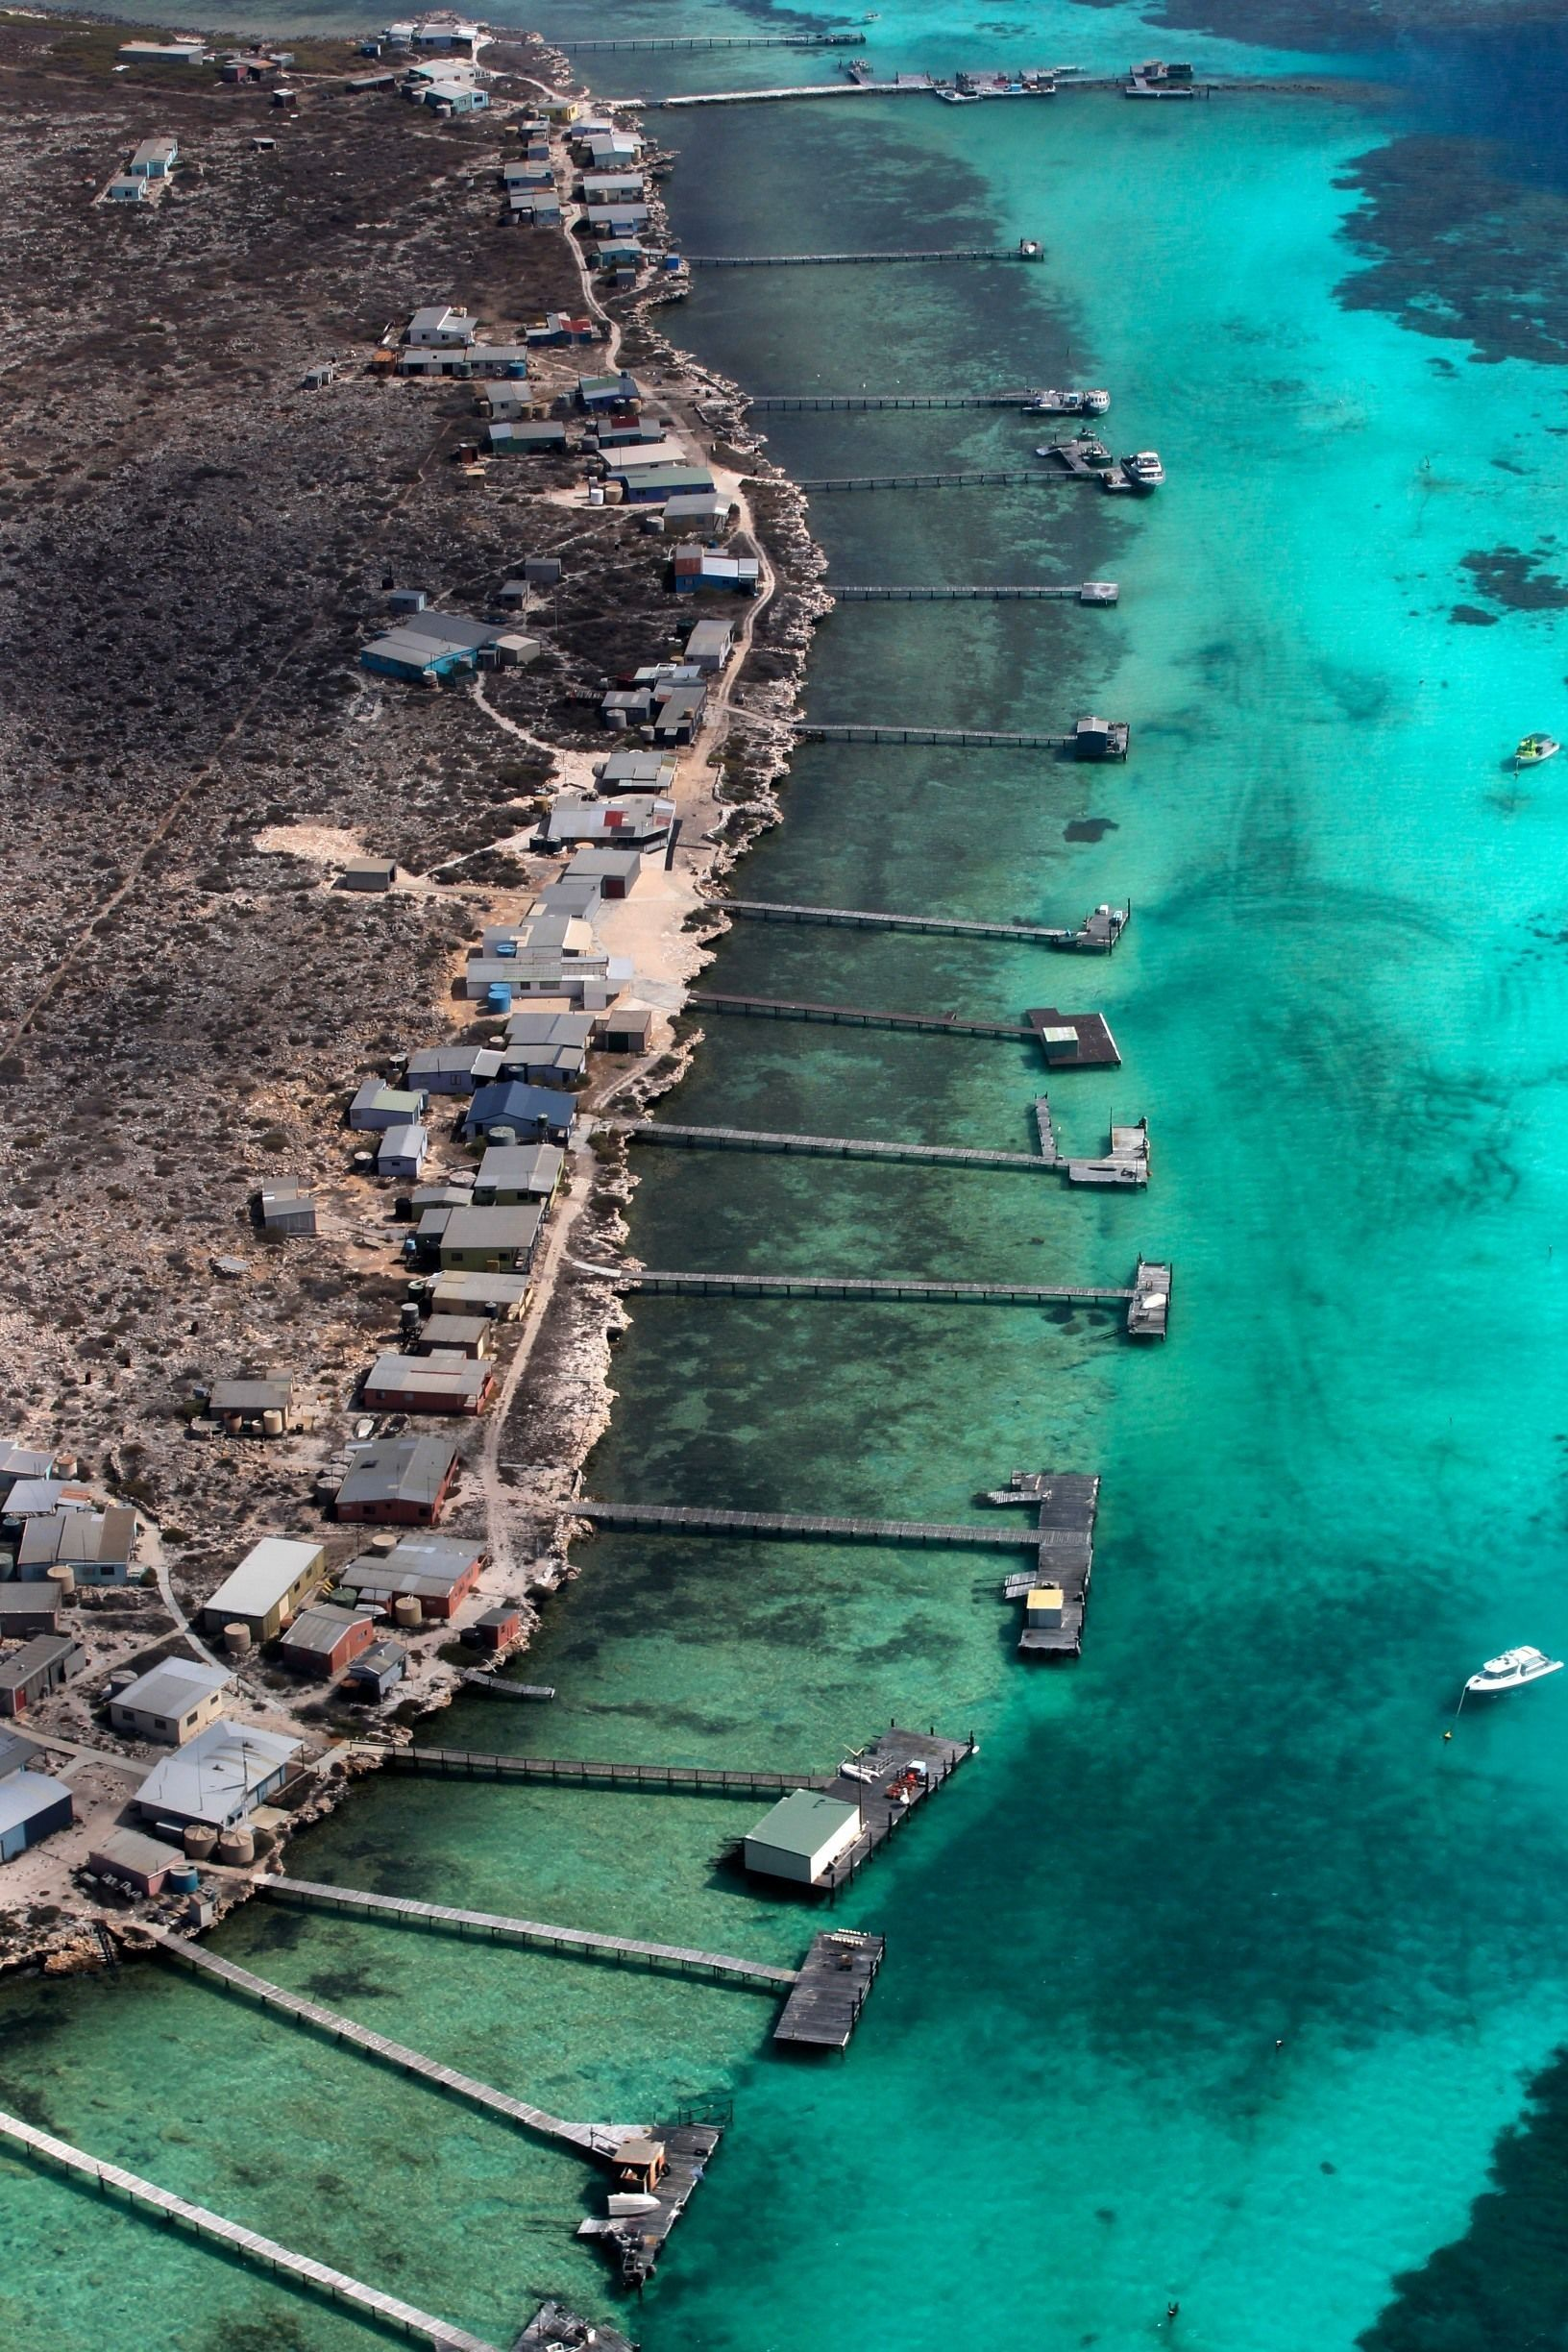 Shipwreck Special Half Day Tour of the Abrolhos Islands